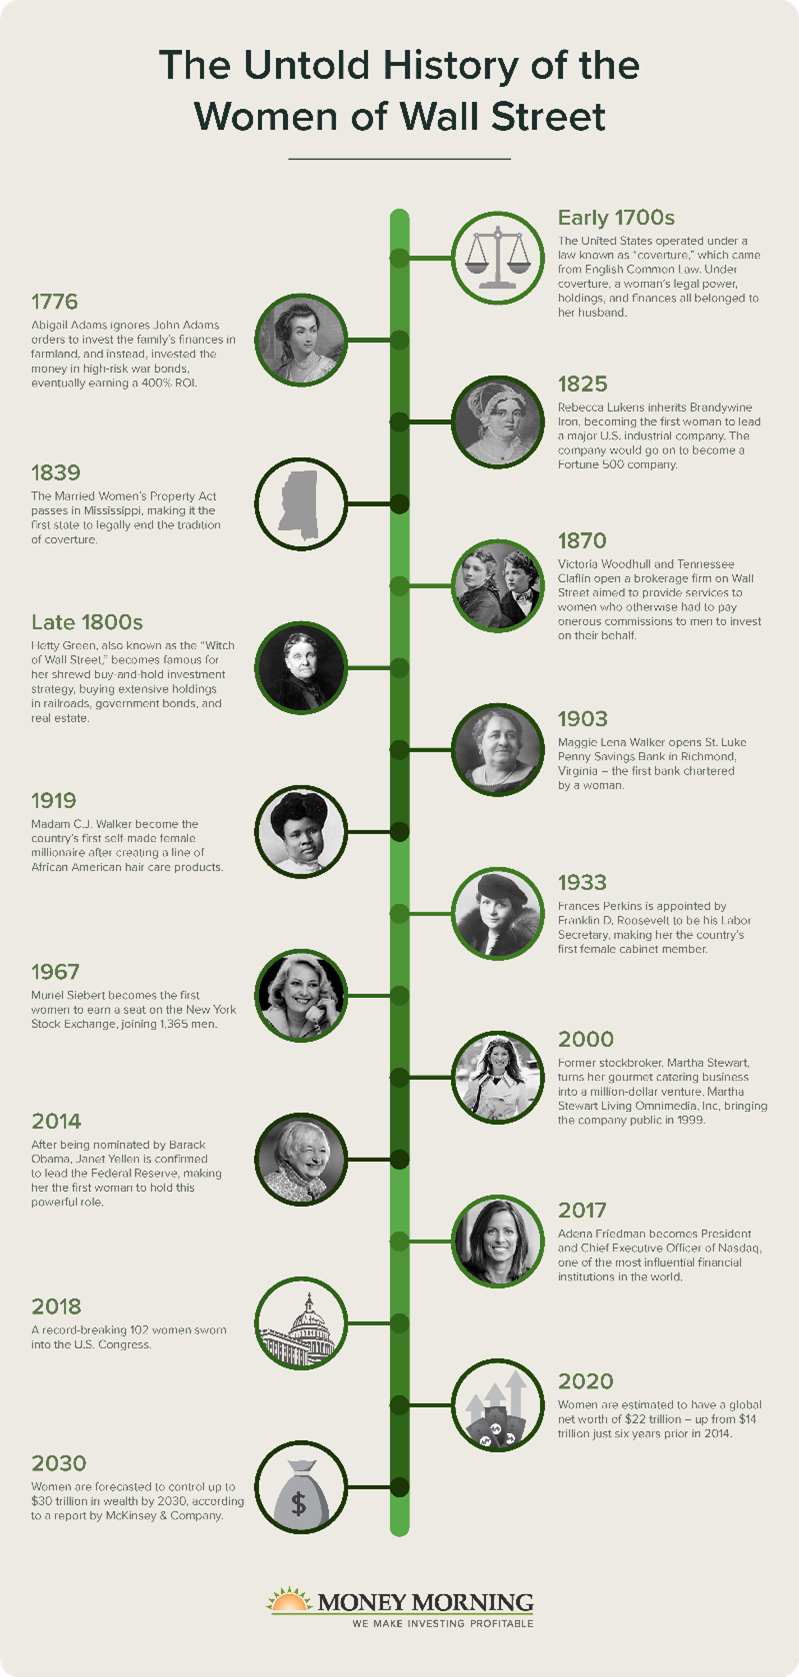 A timeline from the 1700s to present day showing the underappreciated women who were extremely successful in Wall Street and business.